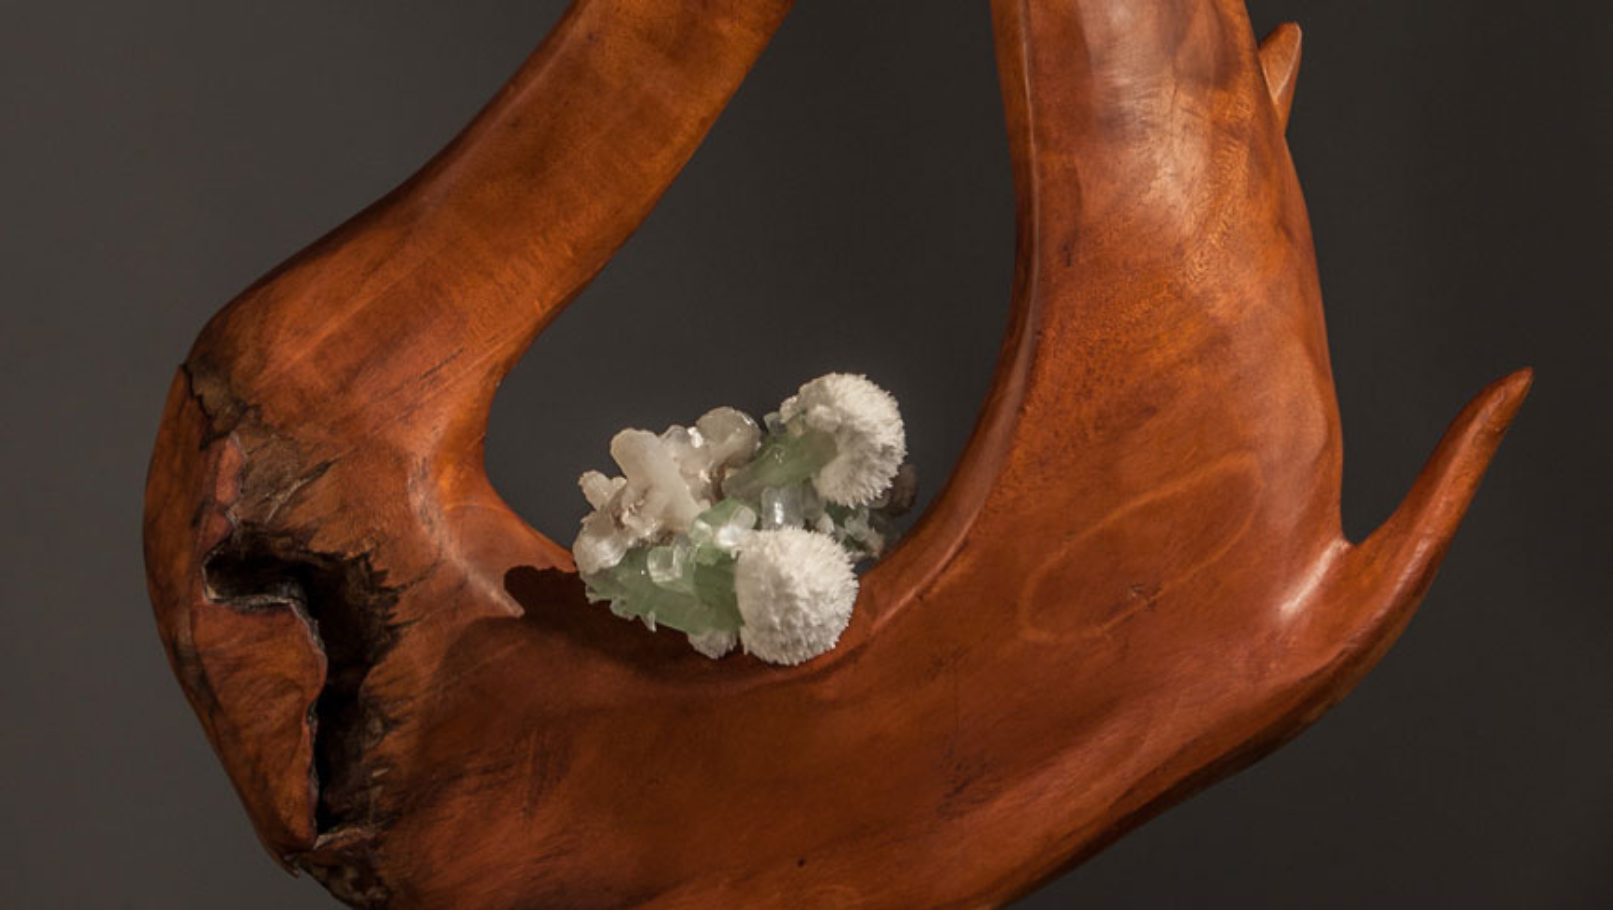 Infinite Energy - Mahoni Wood Apophyllite Crystal, Stilbite & Scolecite Sculpture by Dorit Schwartz